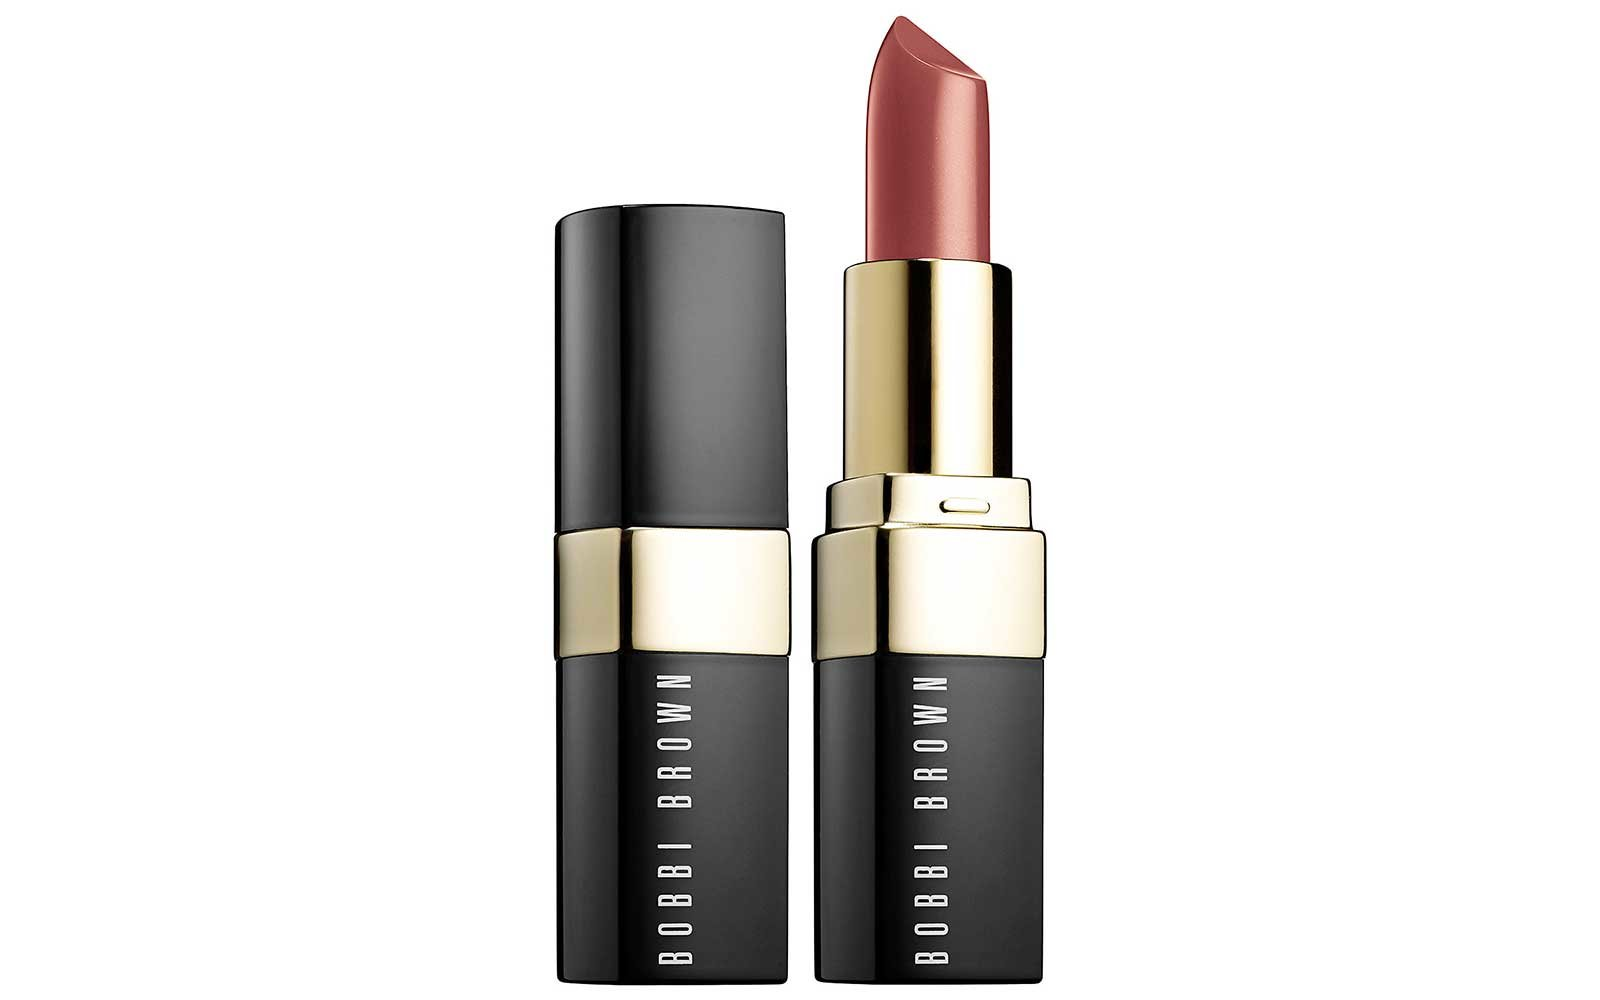 Bobbi Brown Raisin Lipstick